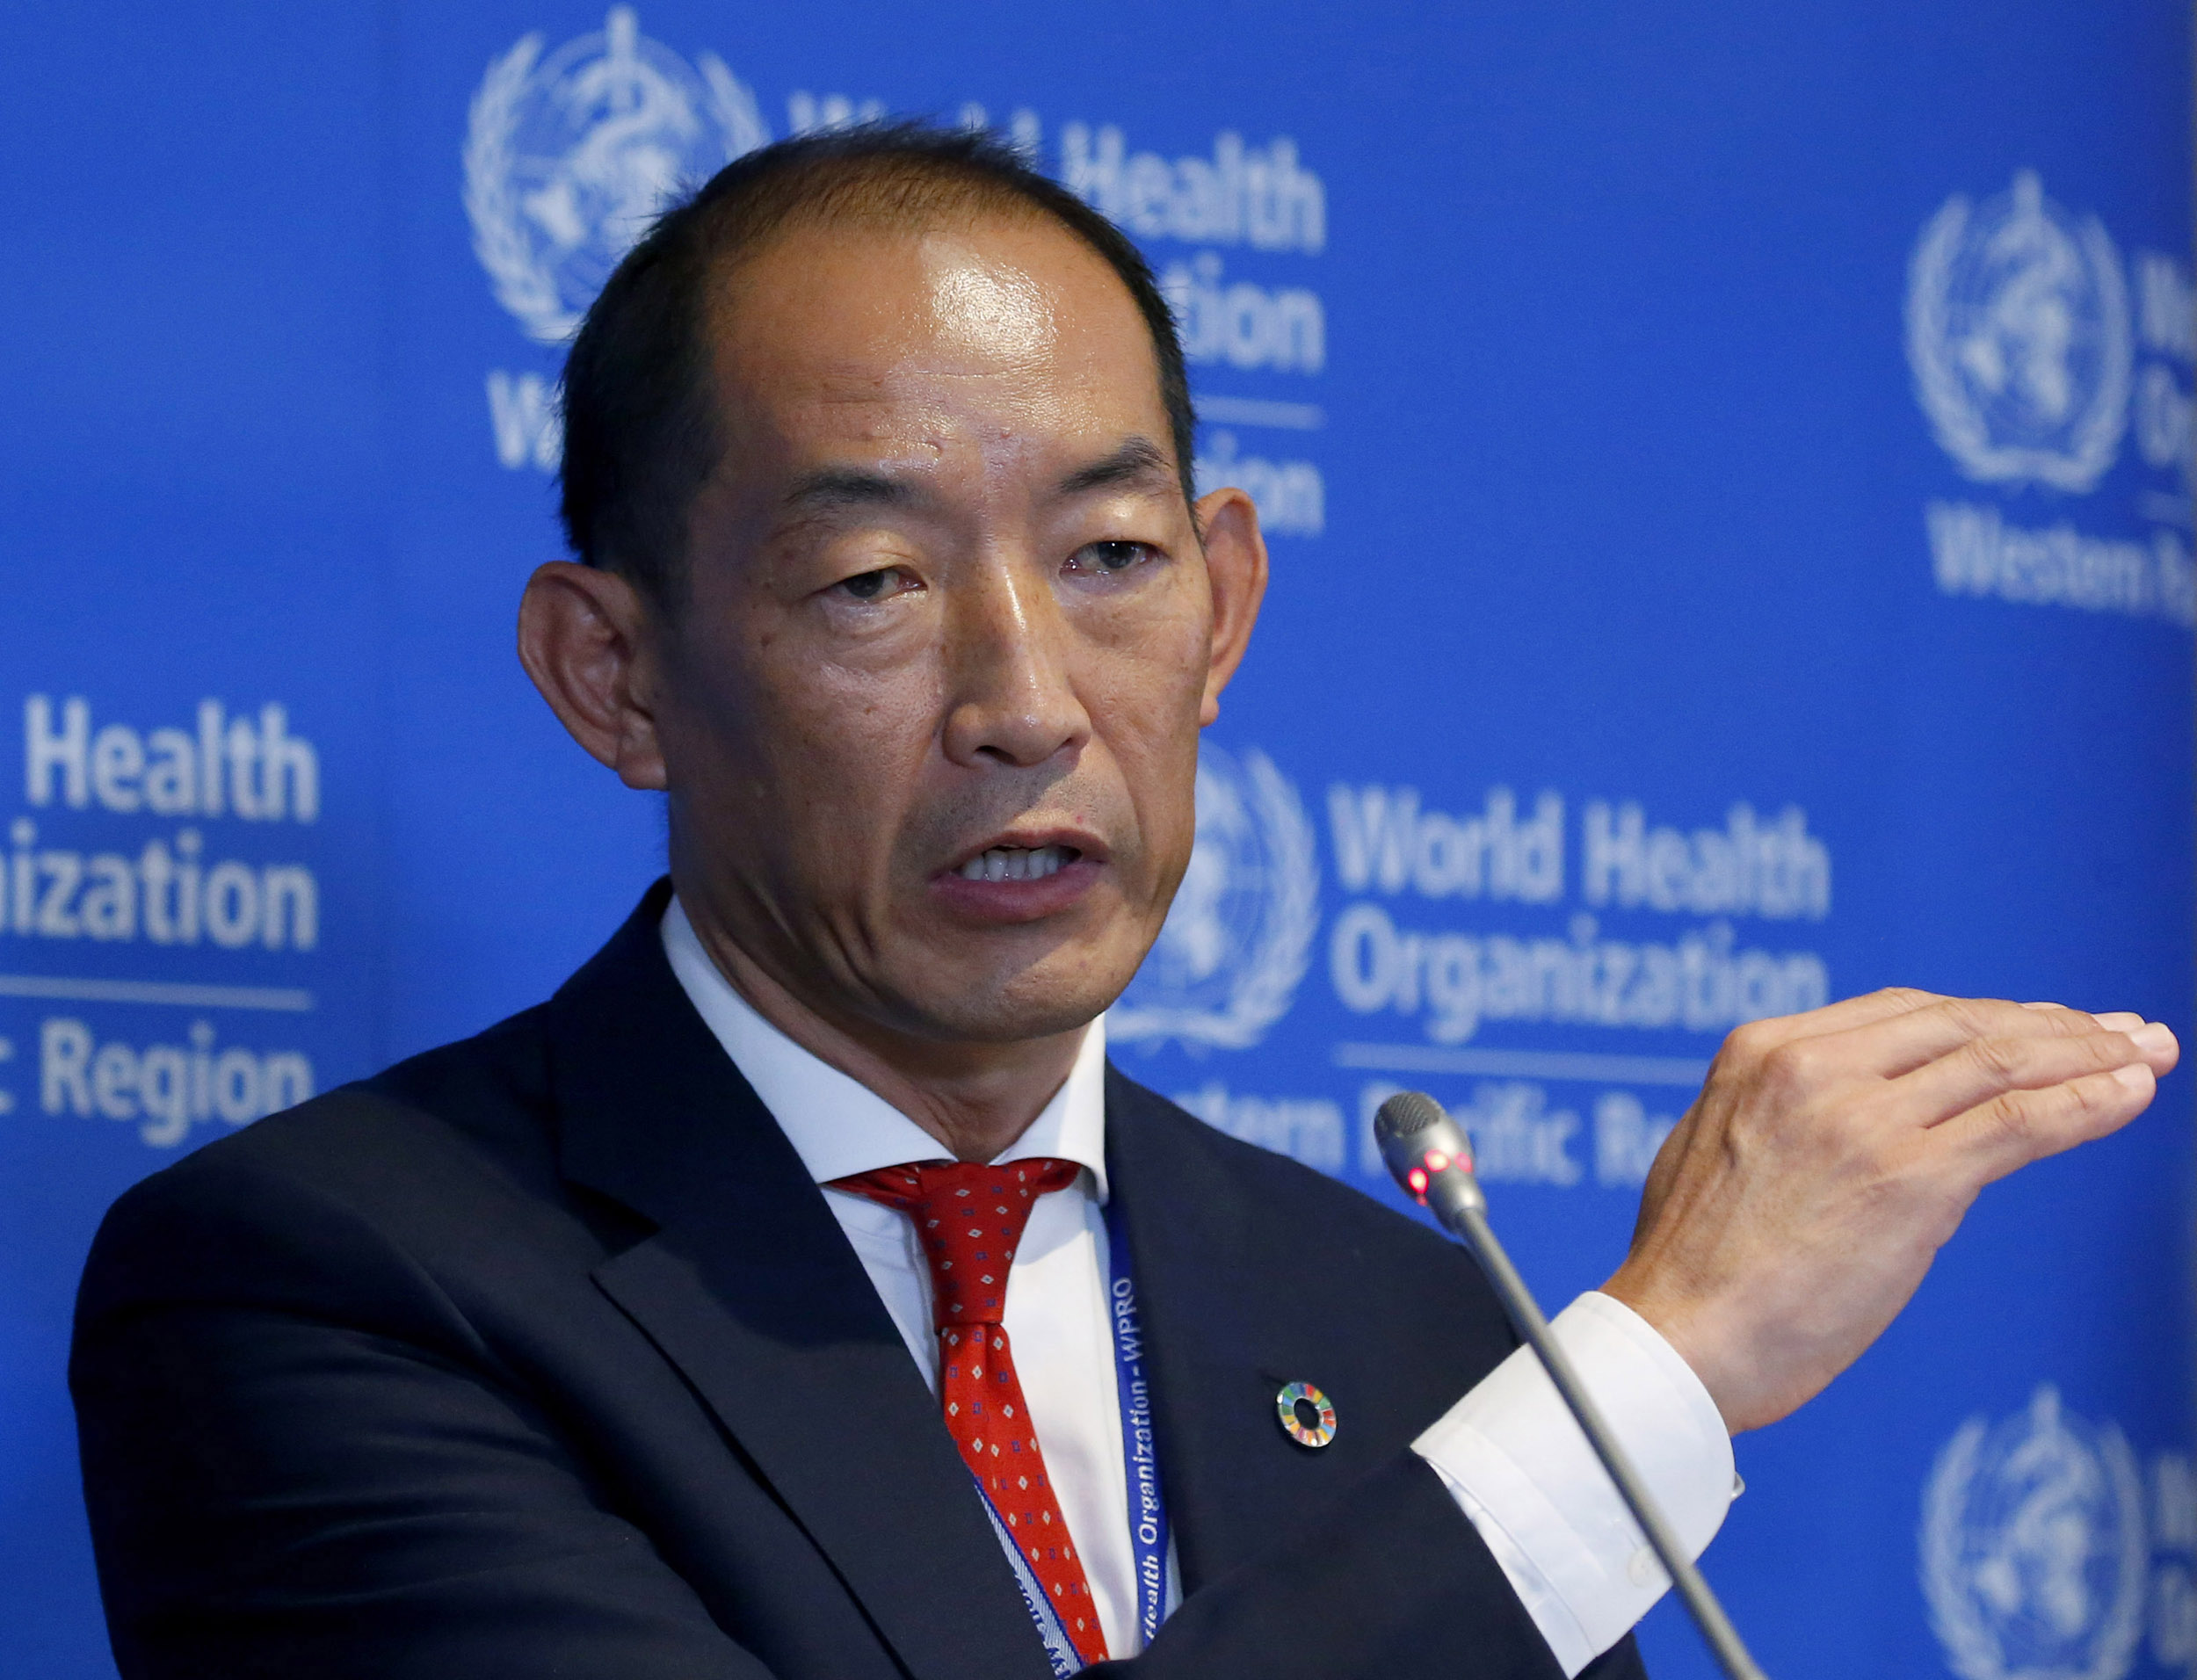 World Health Organization Regional Director for Western Pacific Takeshi Kasai addresses the media at the start of the five-day annual session in Manila, Philippines, on October 7, 2019,